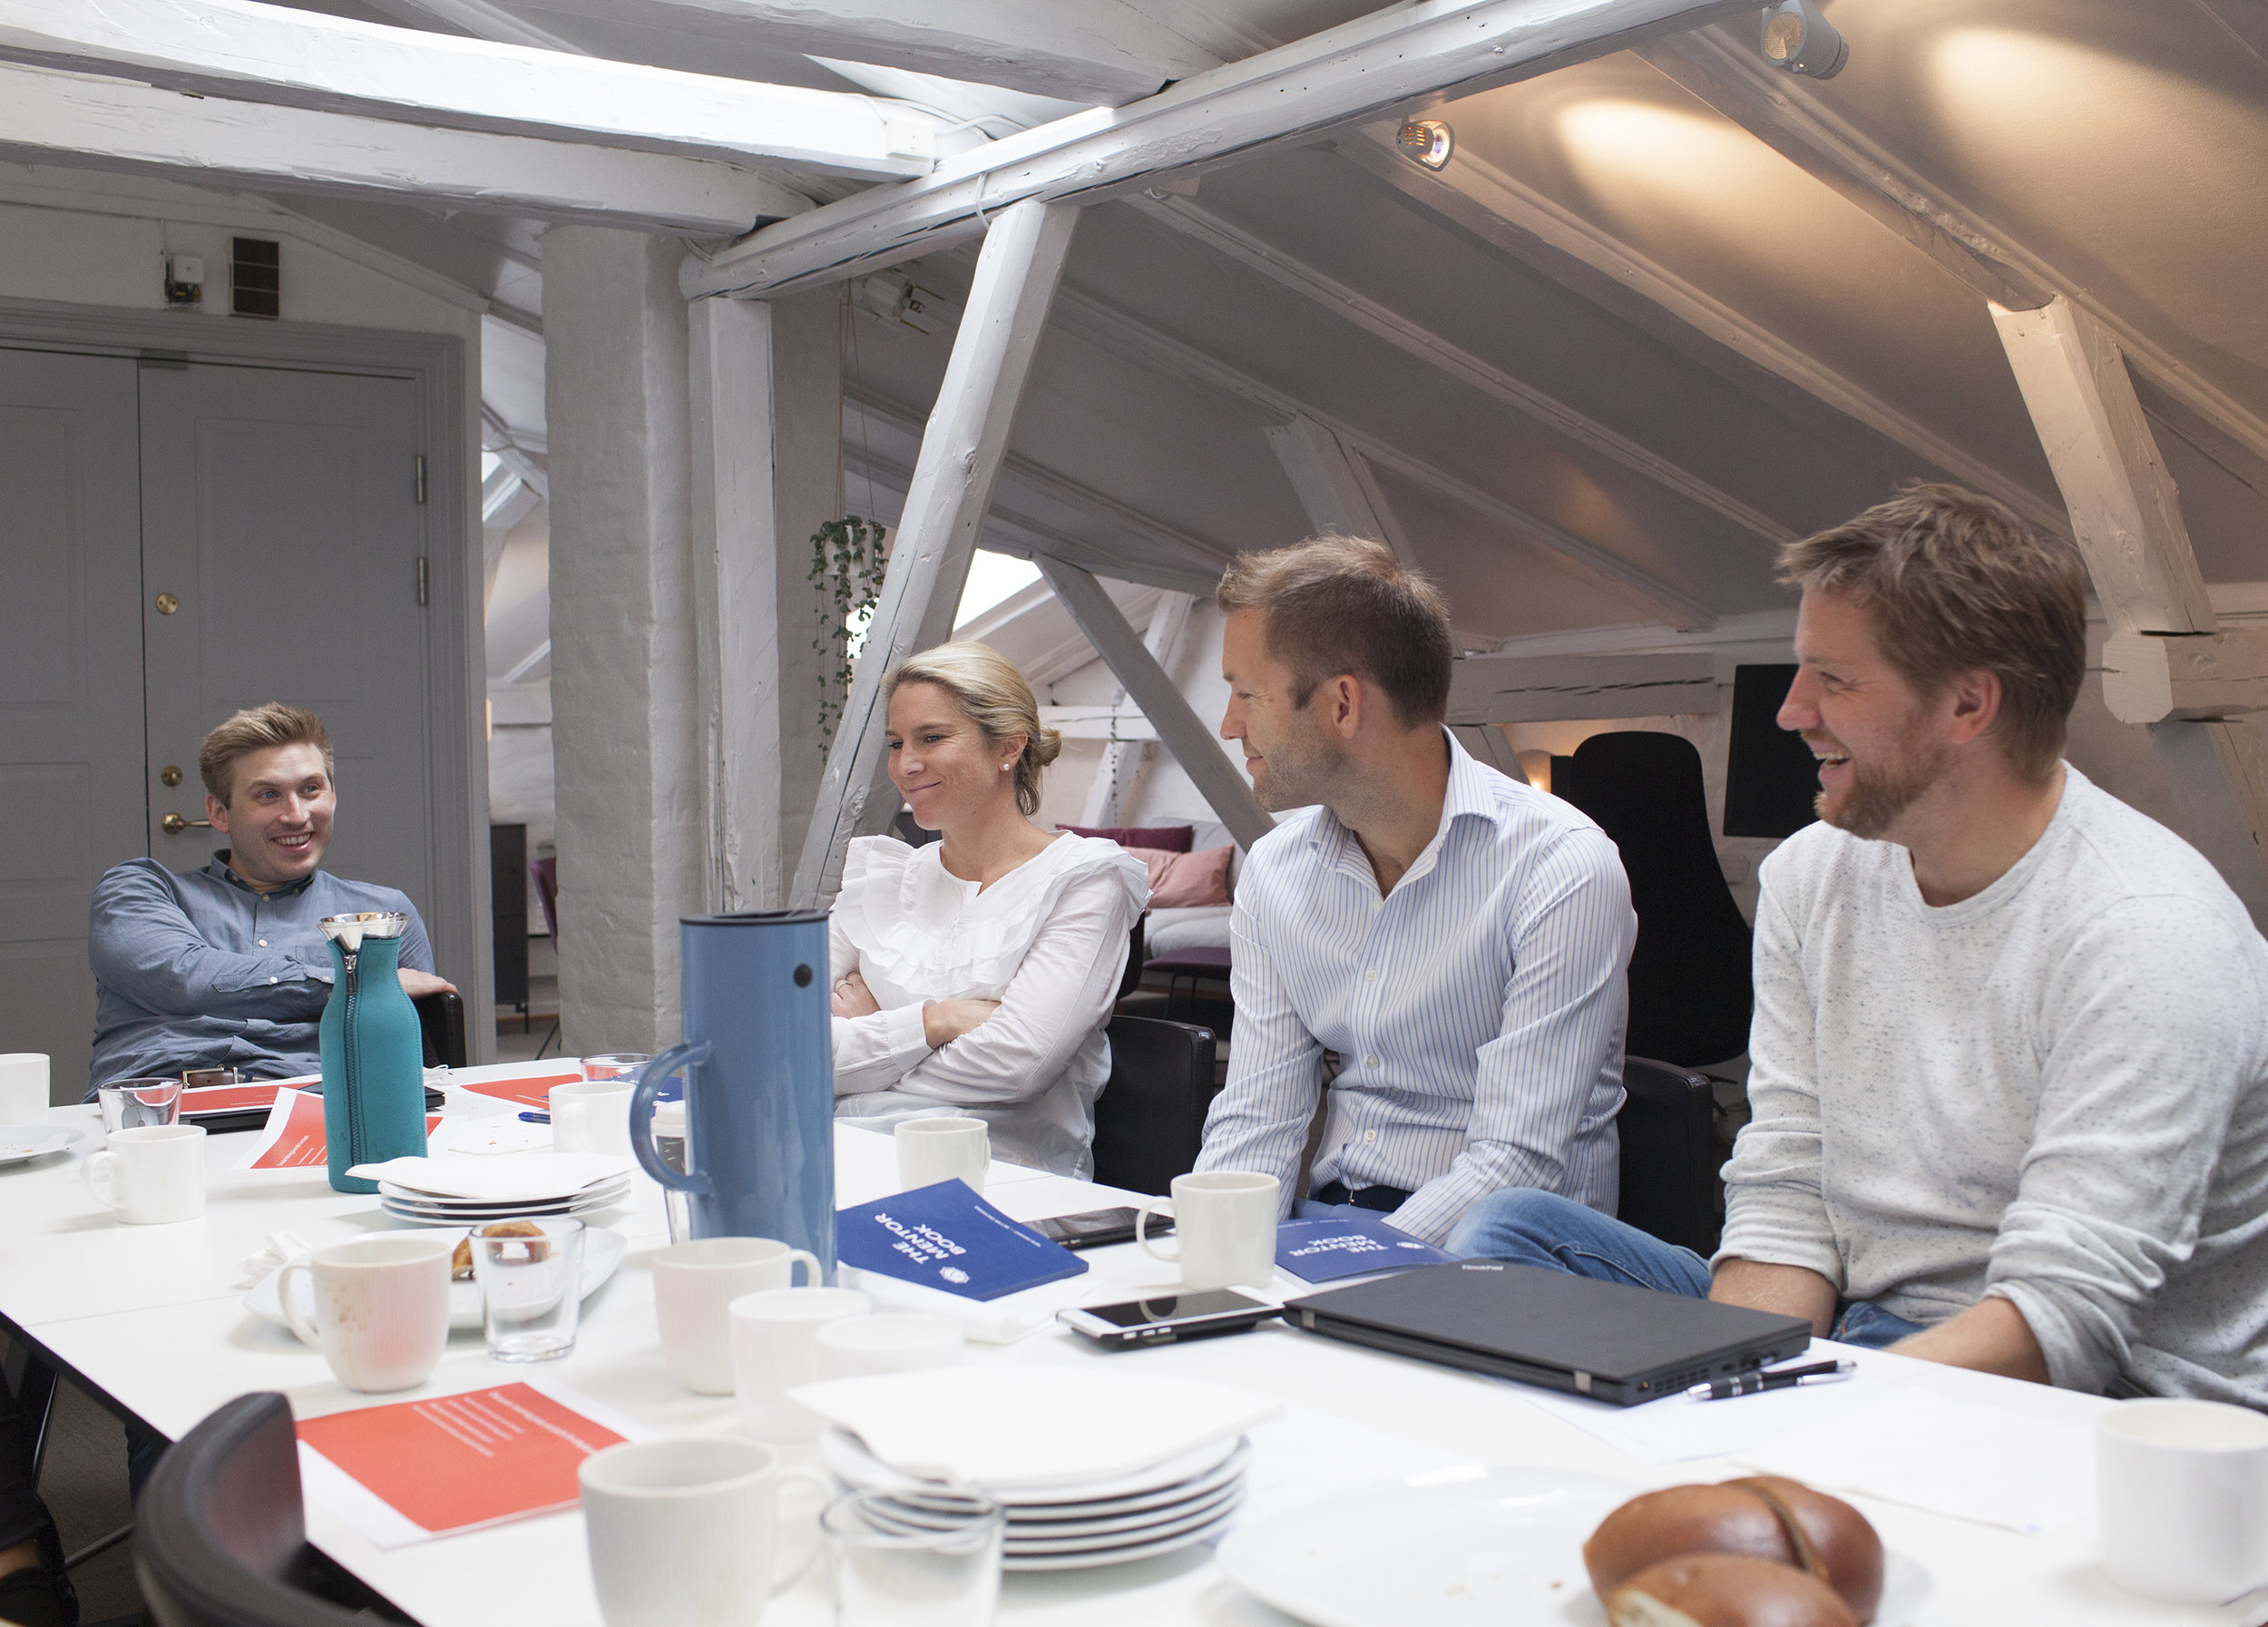 The Analytics mentors are crucial for the success of employees on their analytics journey. From left, Håkon Moltubakk, Ingri Langemyhr, Peter Lindström and André Torbjørnsen in one of the early mentor training sessions.